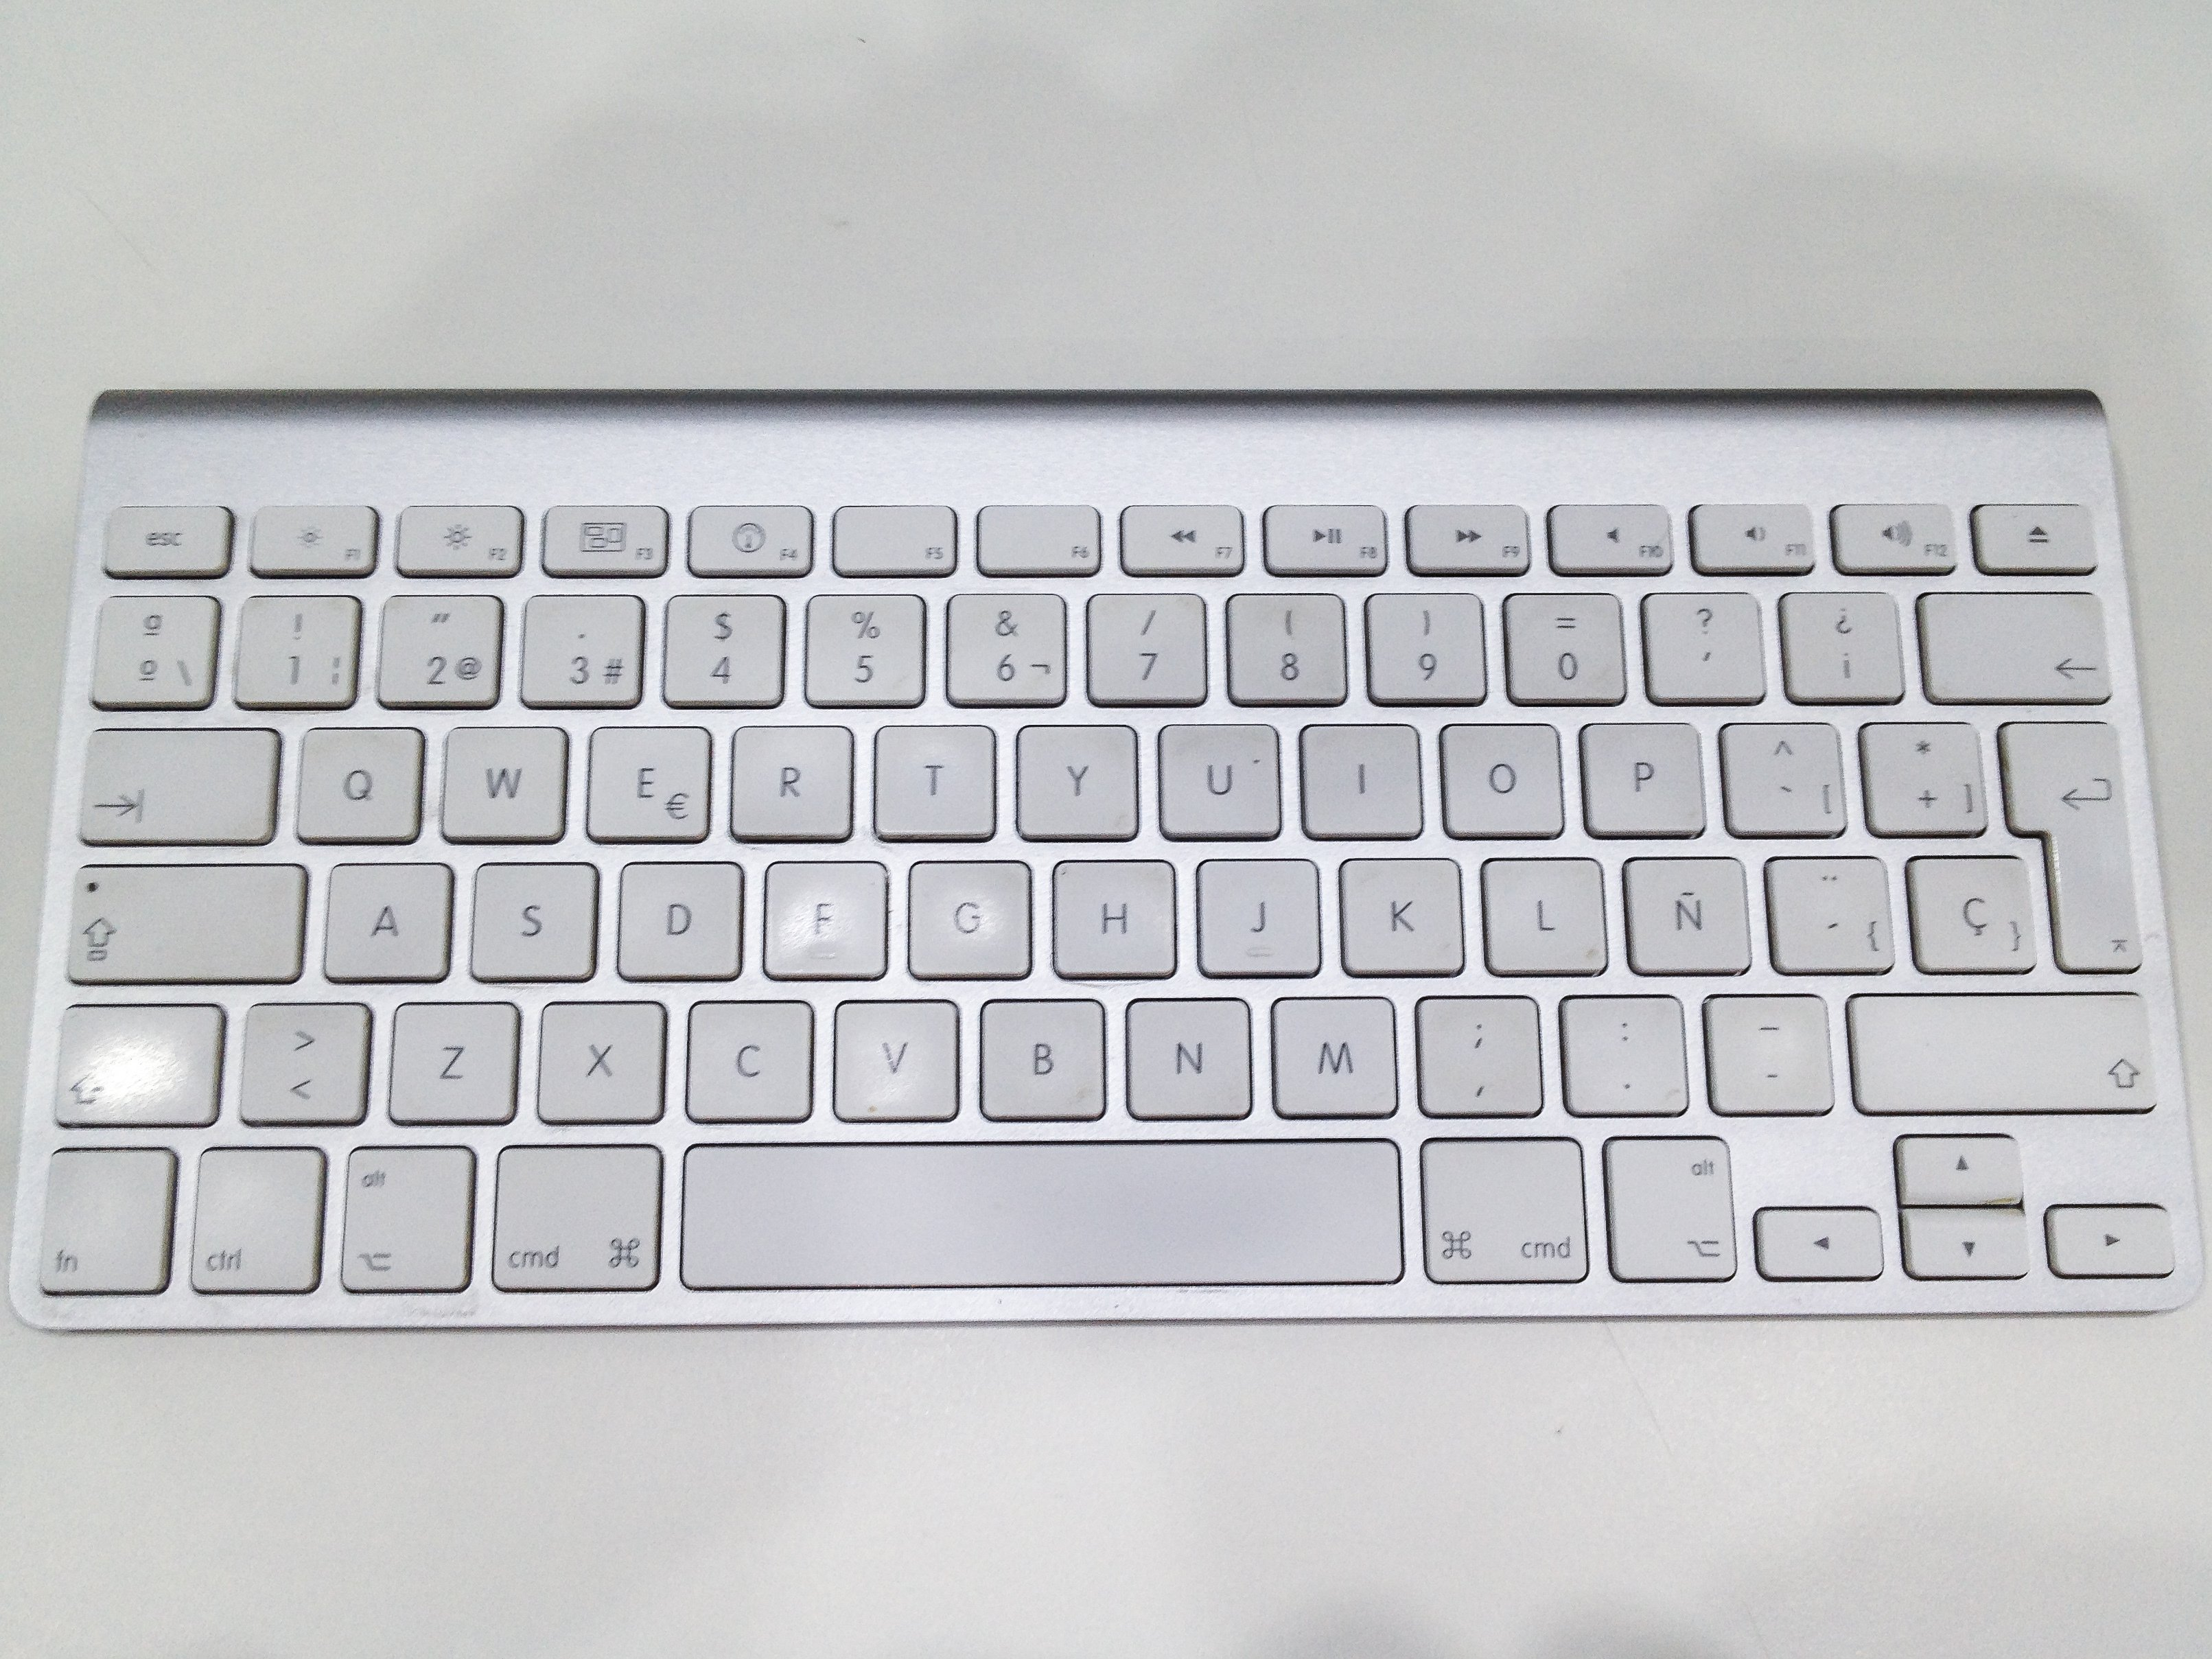 8a2cc7459a9 Apple Wireless Keyboard (A1255) Teardown - iFixit